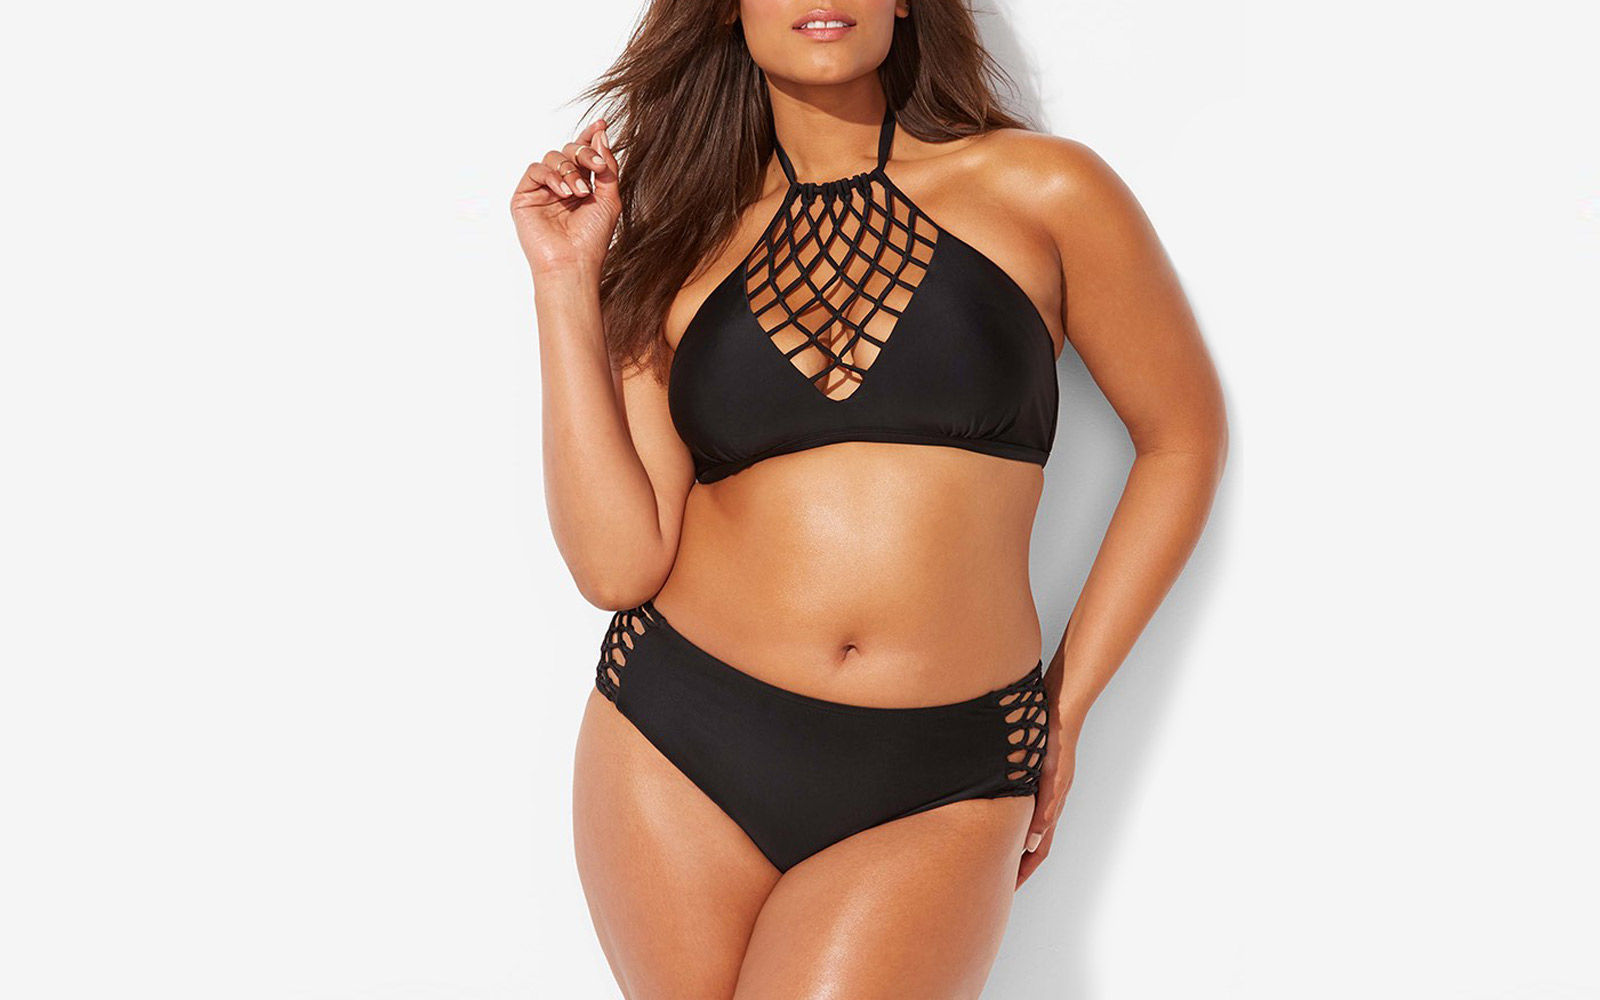 Ashley Graham x Swimsuits for All bikini